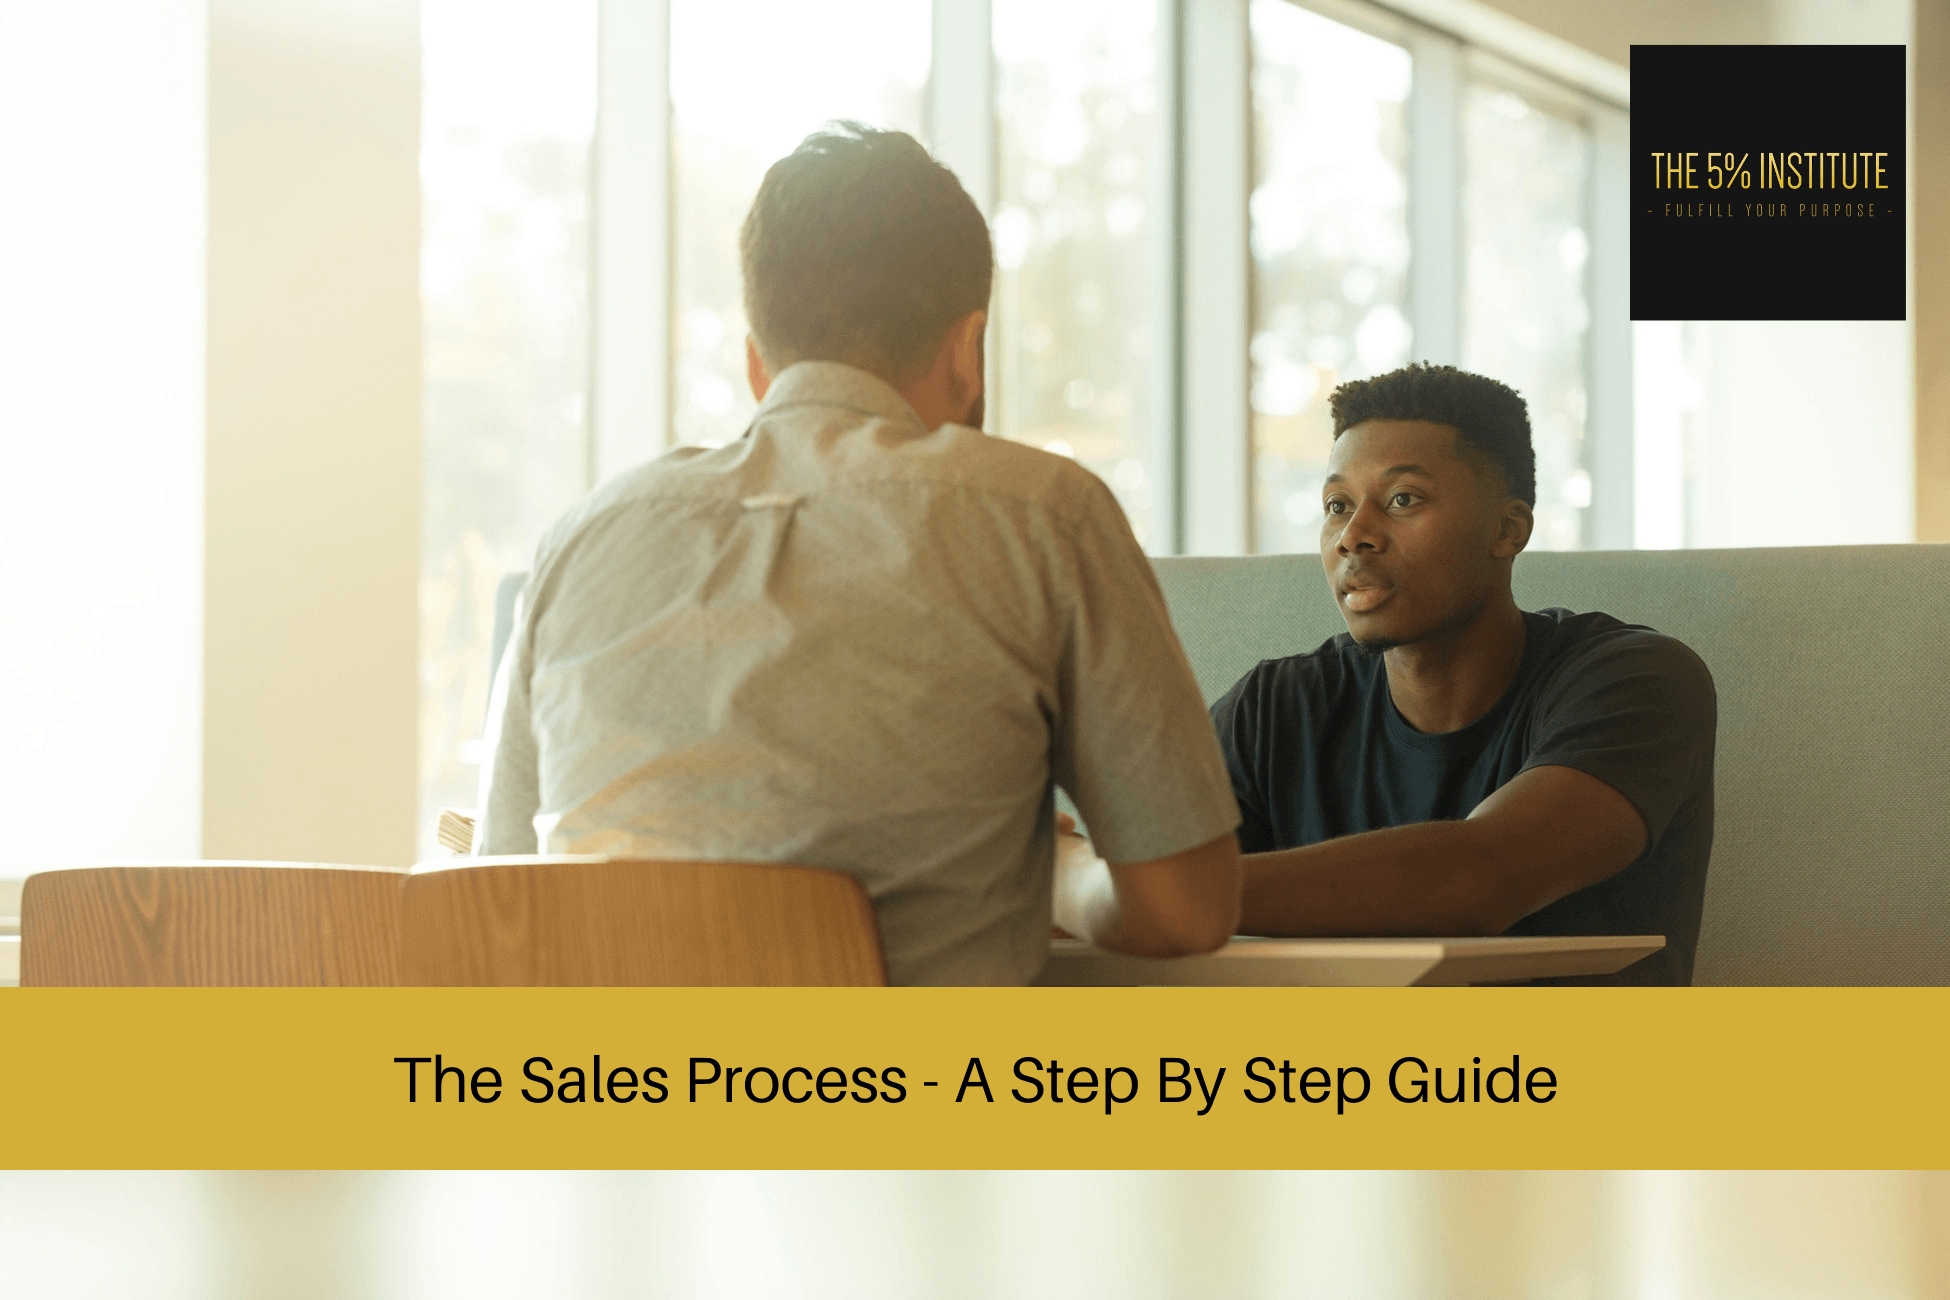 sales process ; selling process